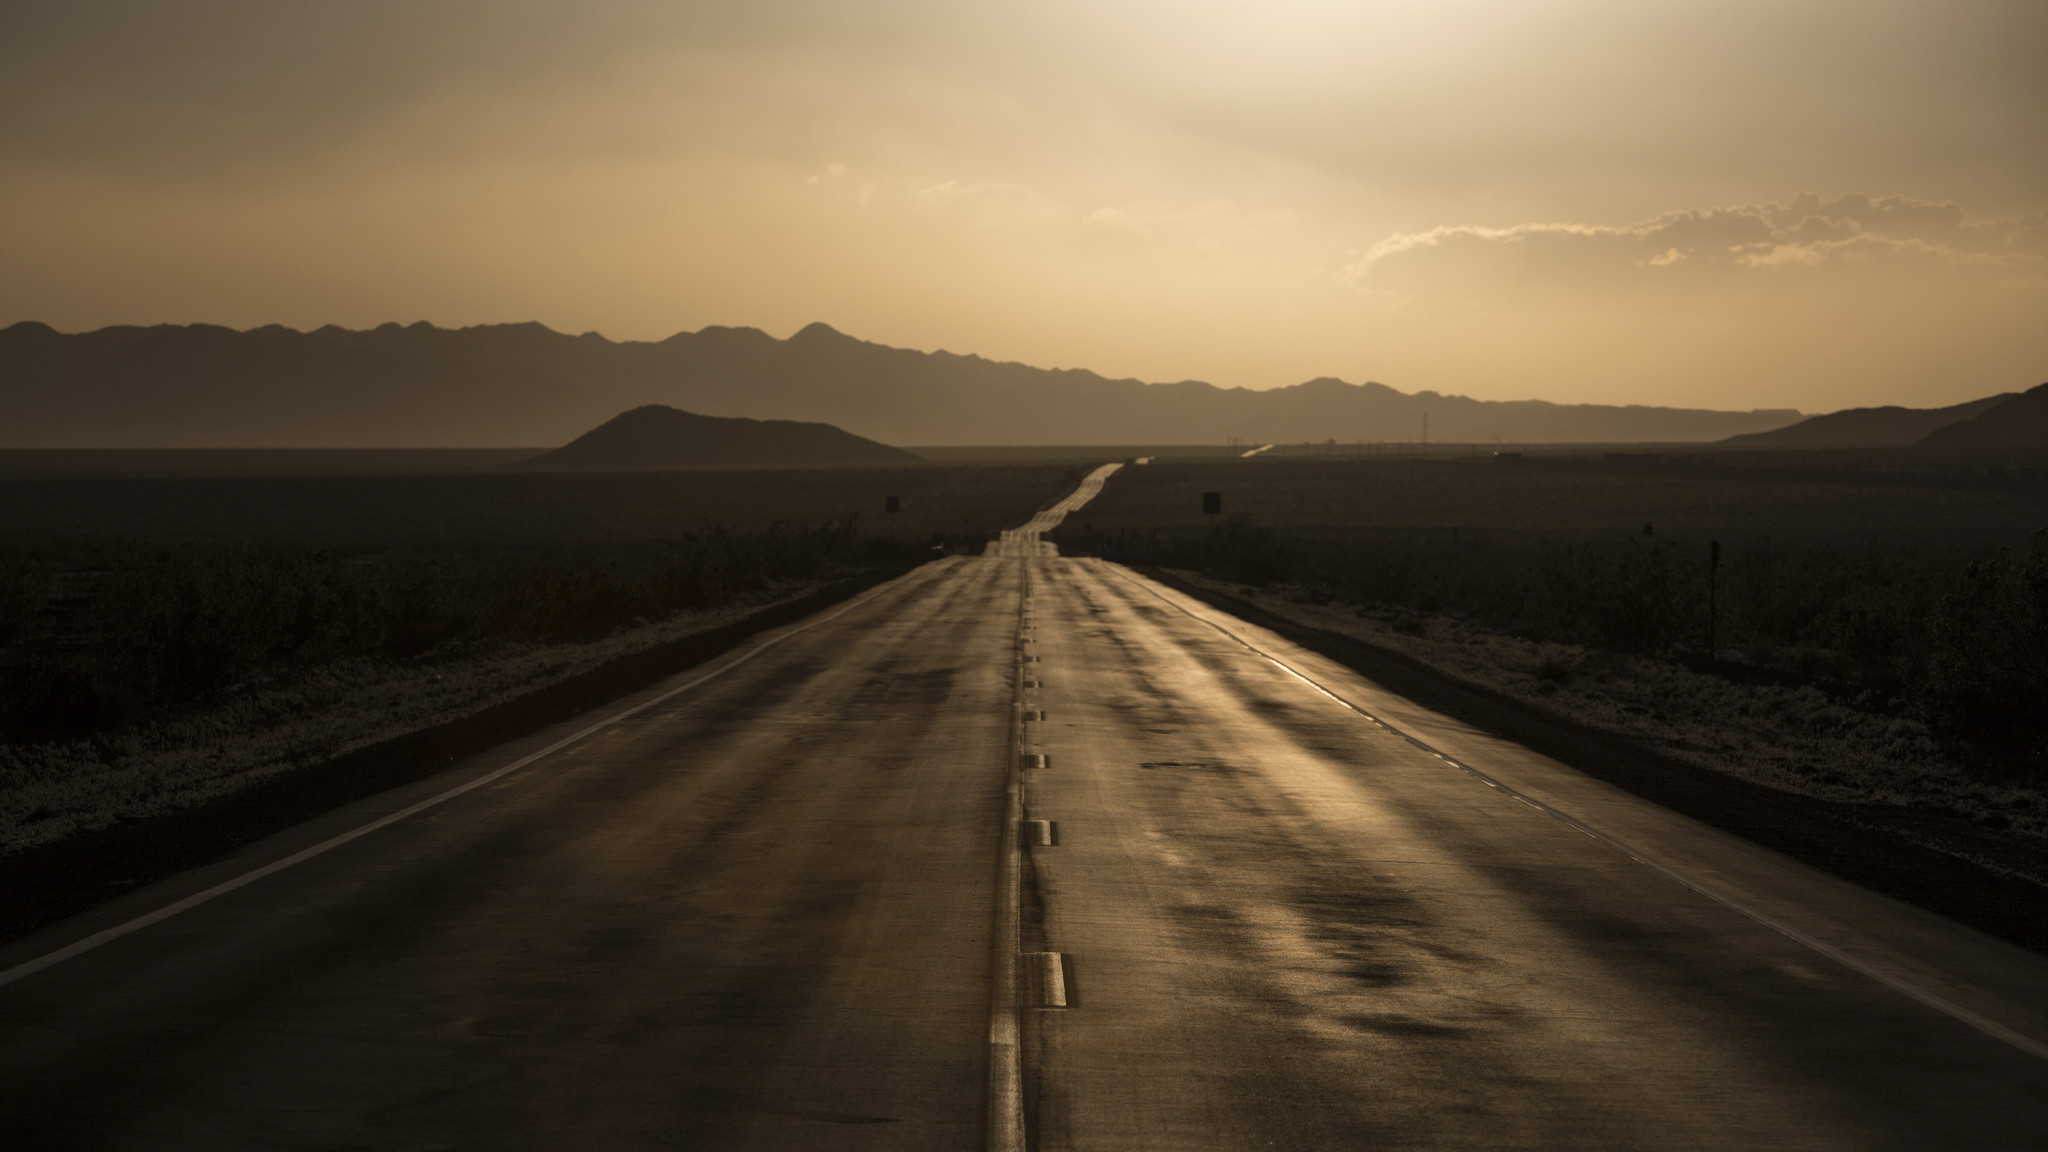 A Trip On Route 66 Proves To Be Uncharted Territory For A